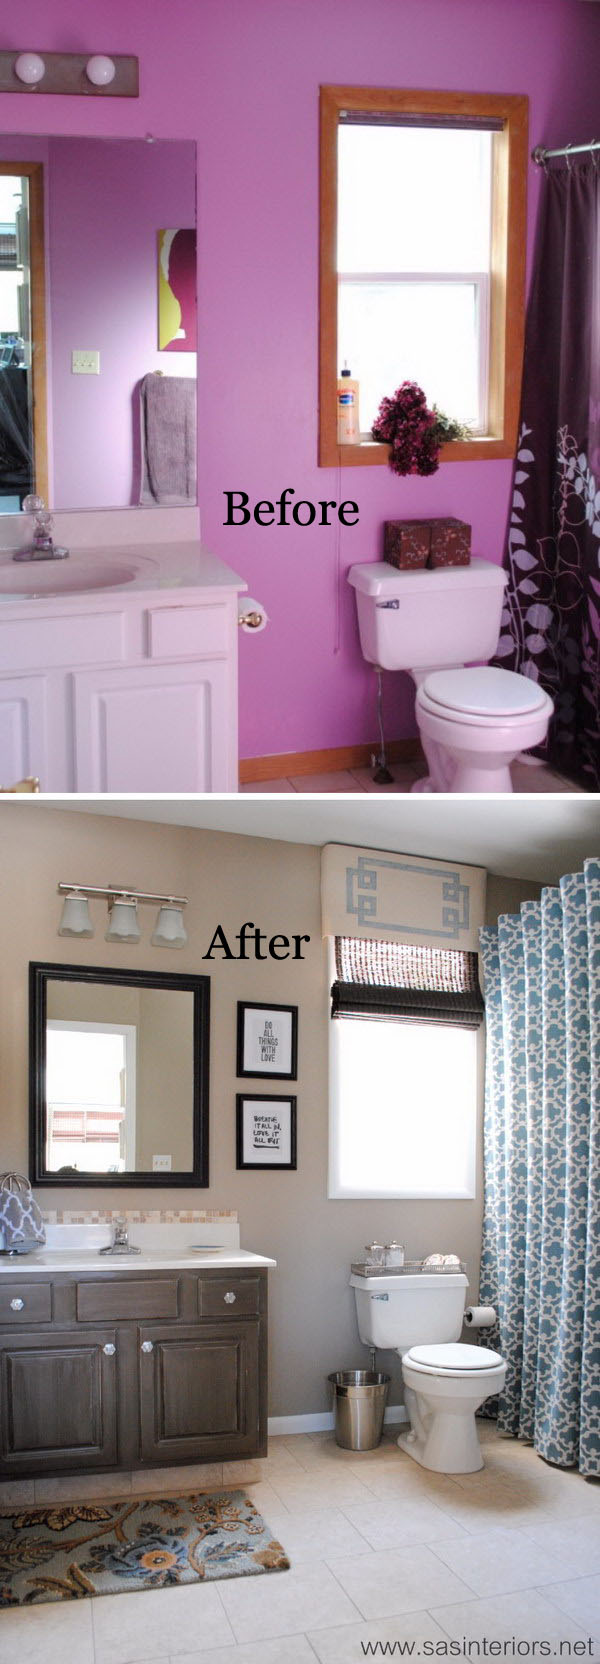 29-30-bathroom-remodel-before-and-after